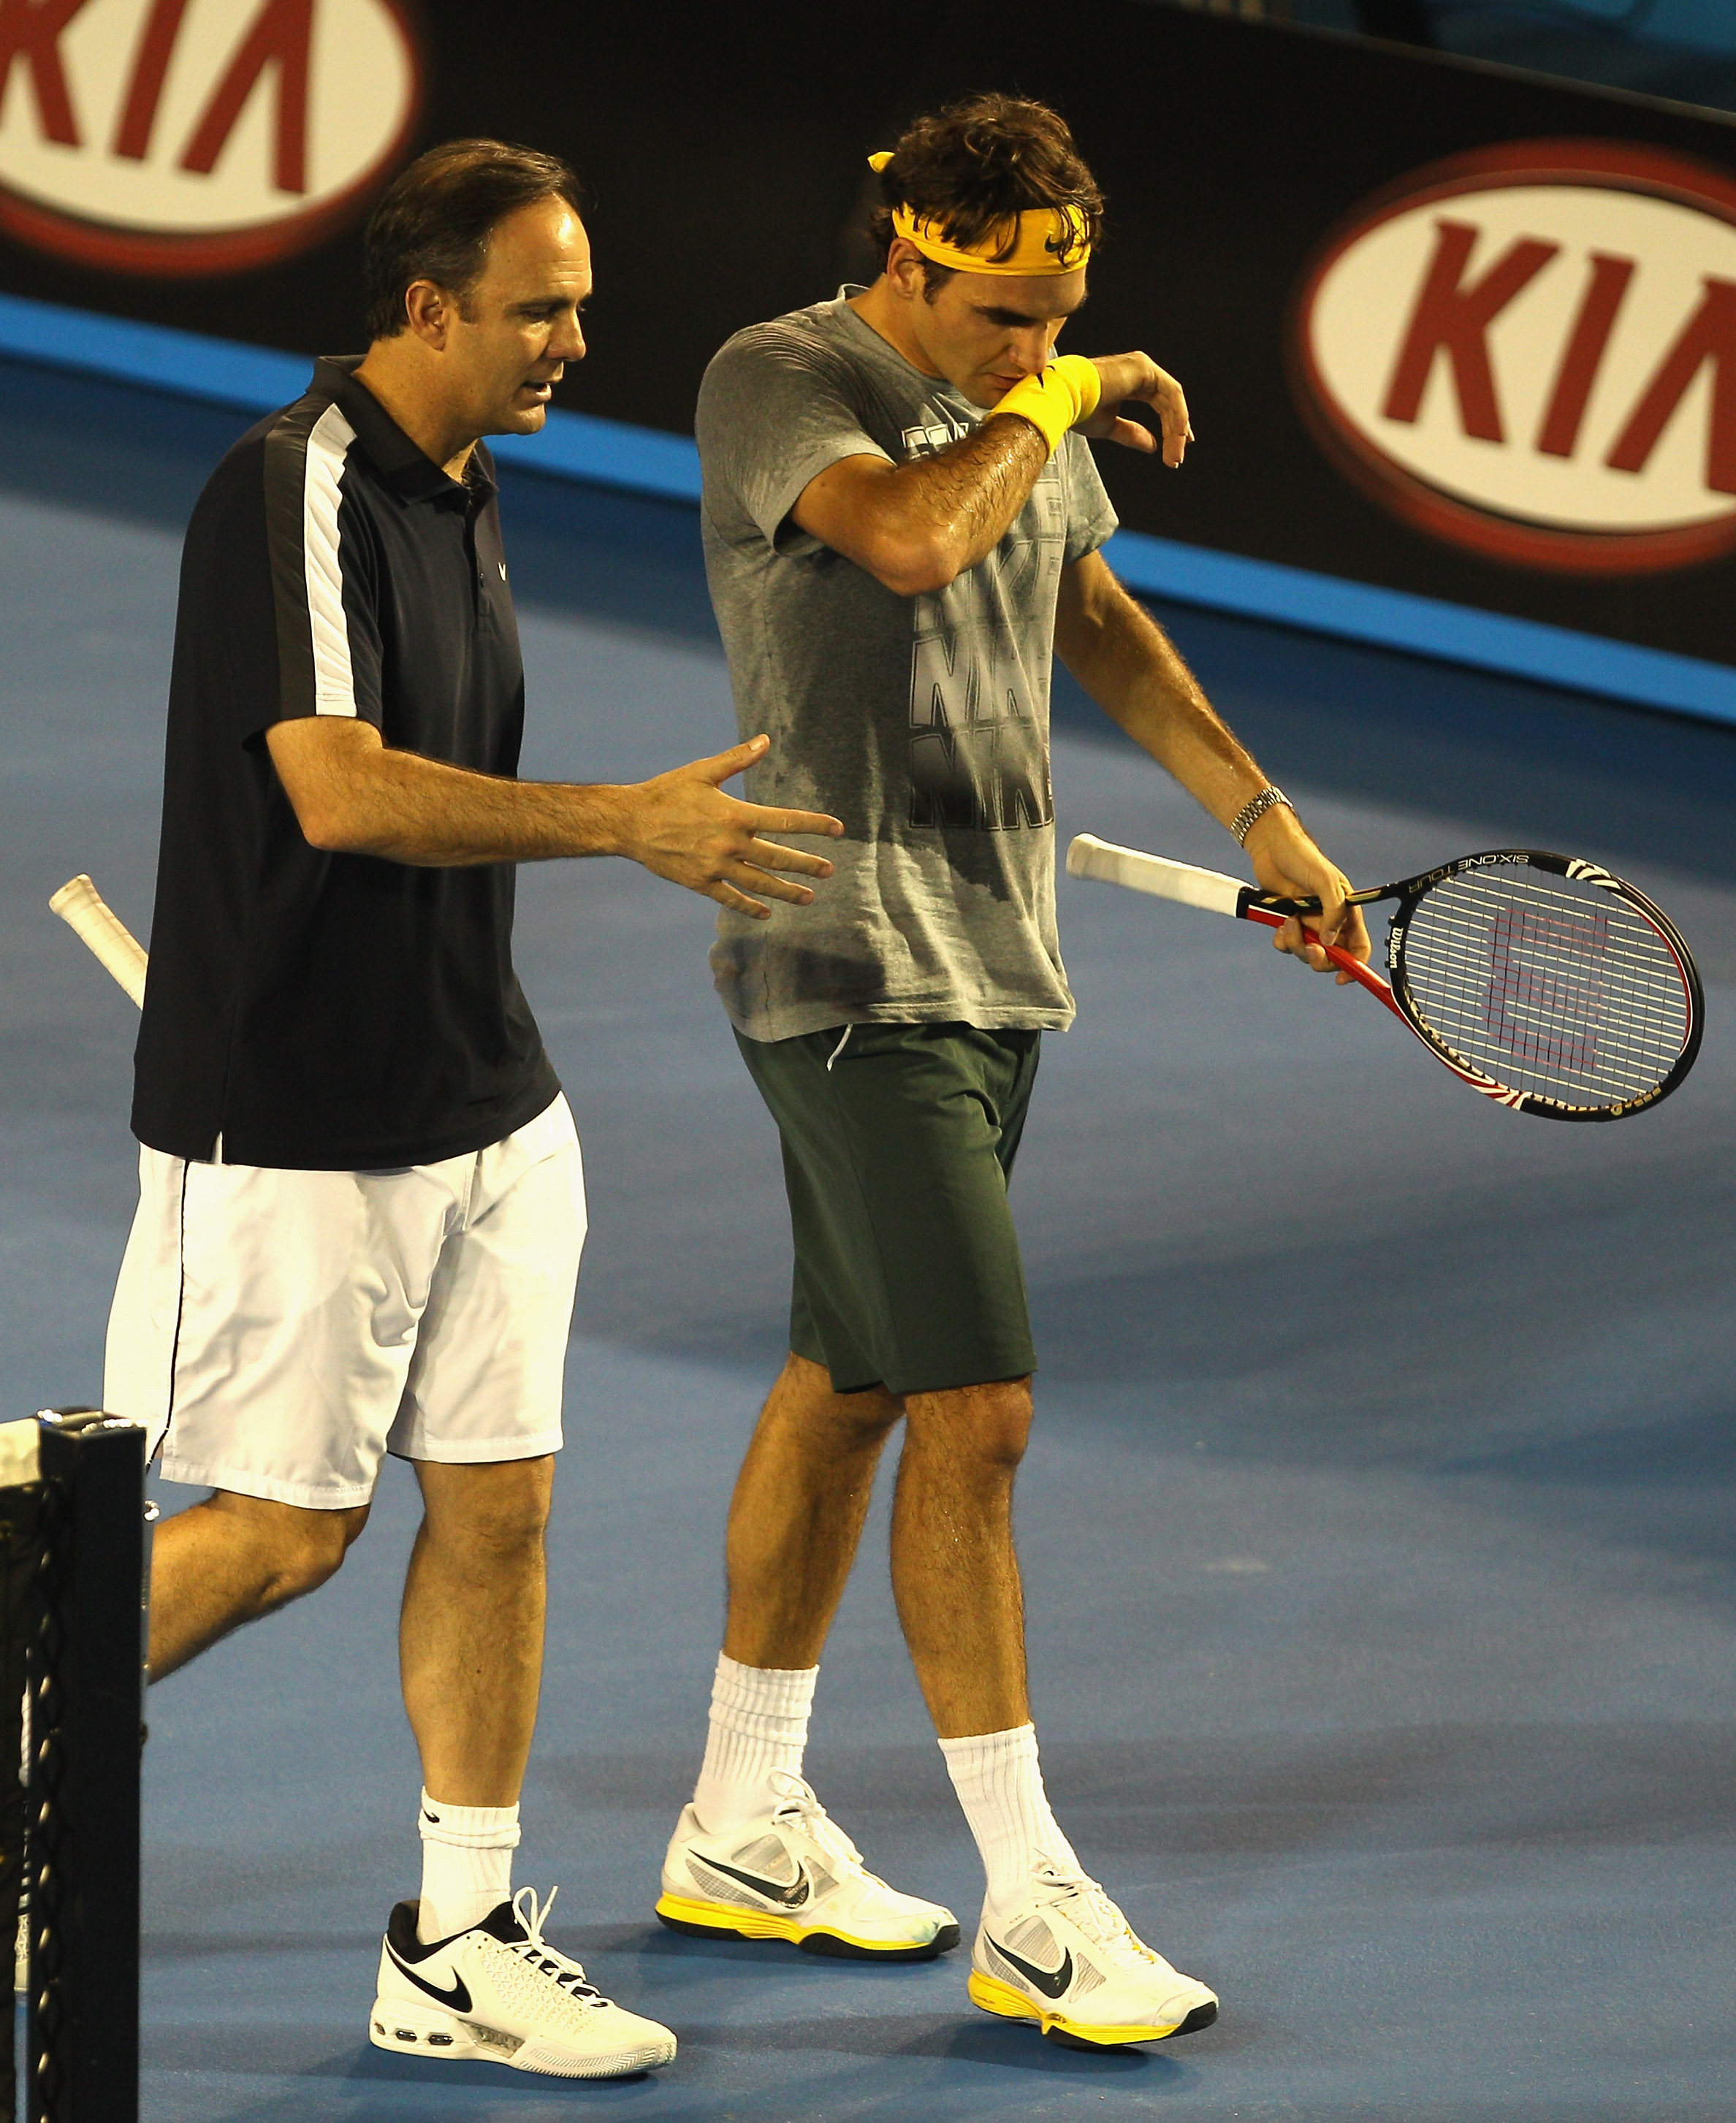 Paul Annacone has one job, get Roger Federer to 20.